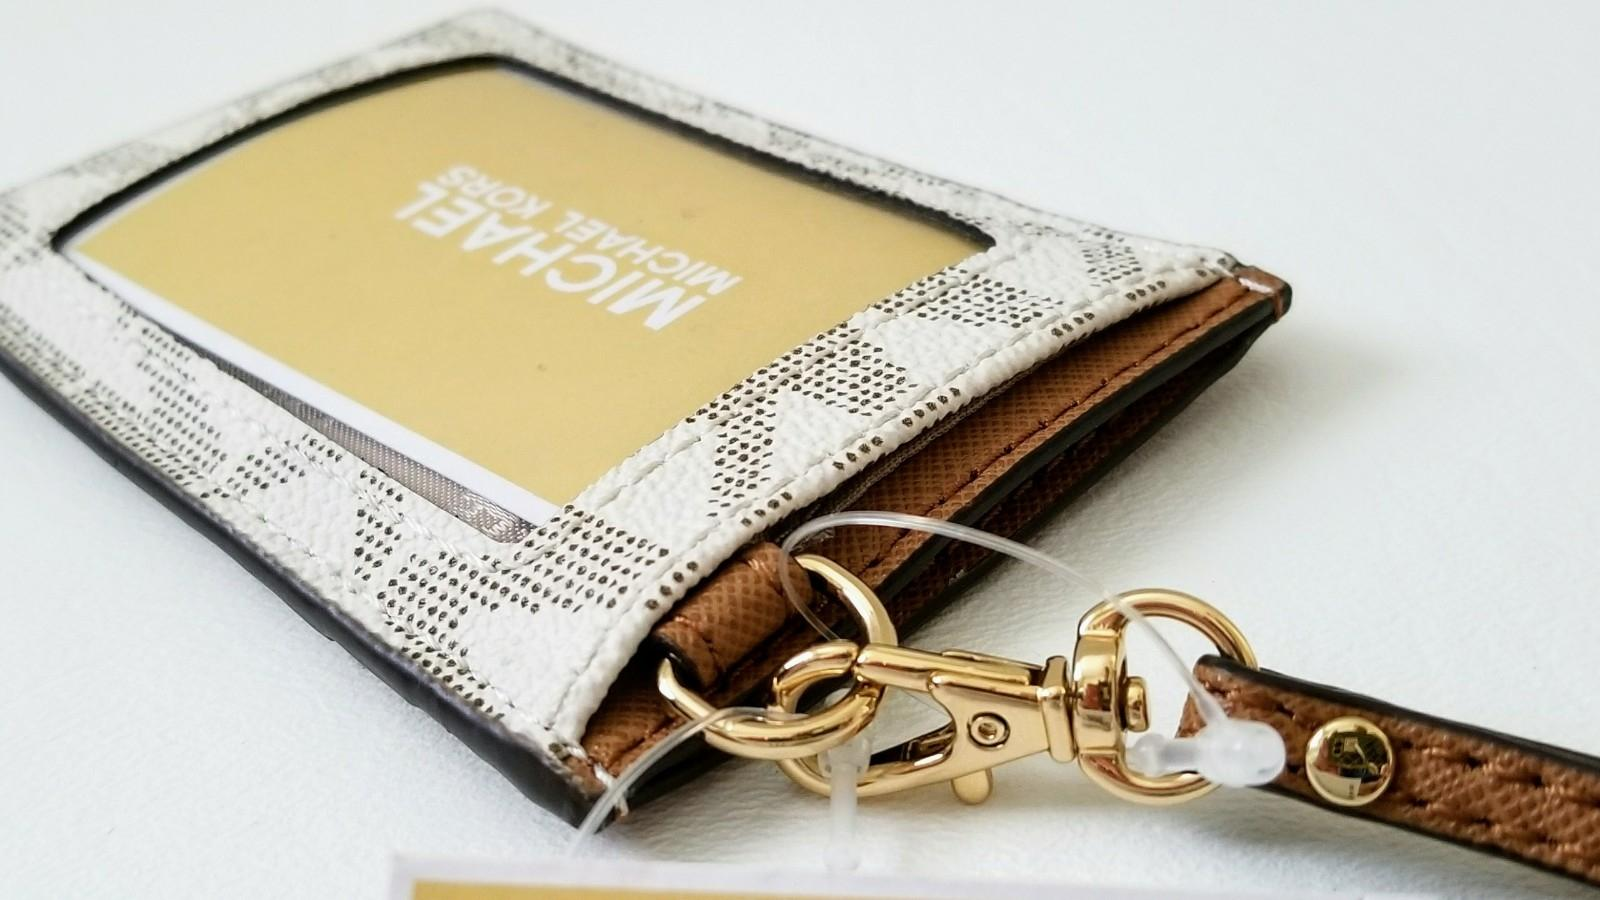 michael kors vanilla acorn new logo employee tag id holder card case lanyard badge wallet